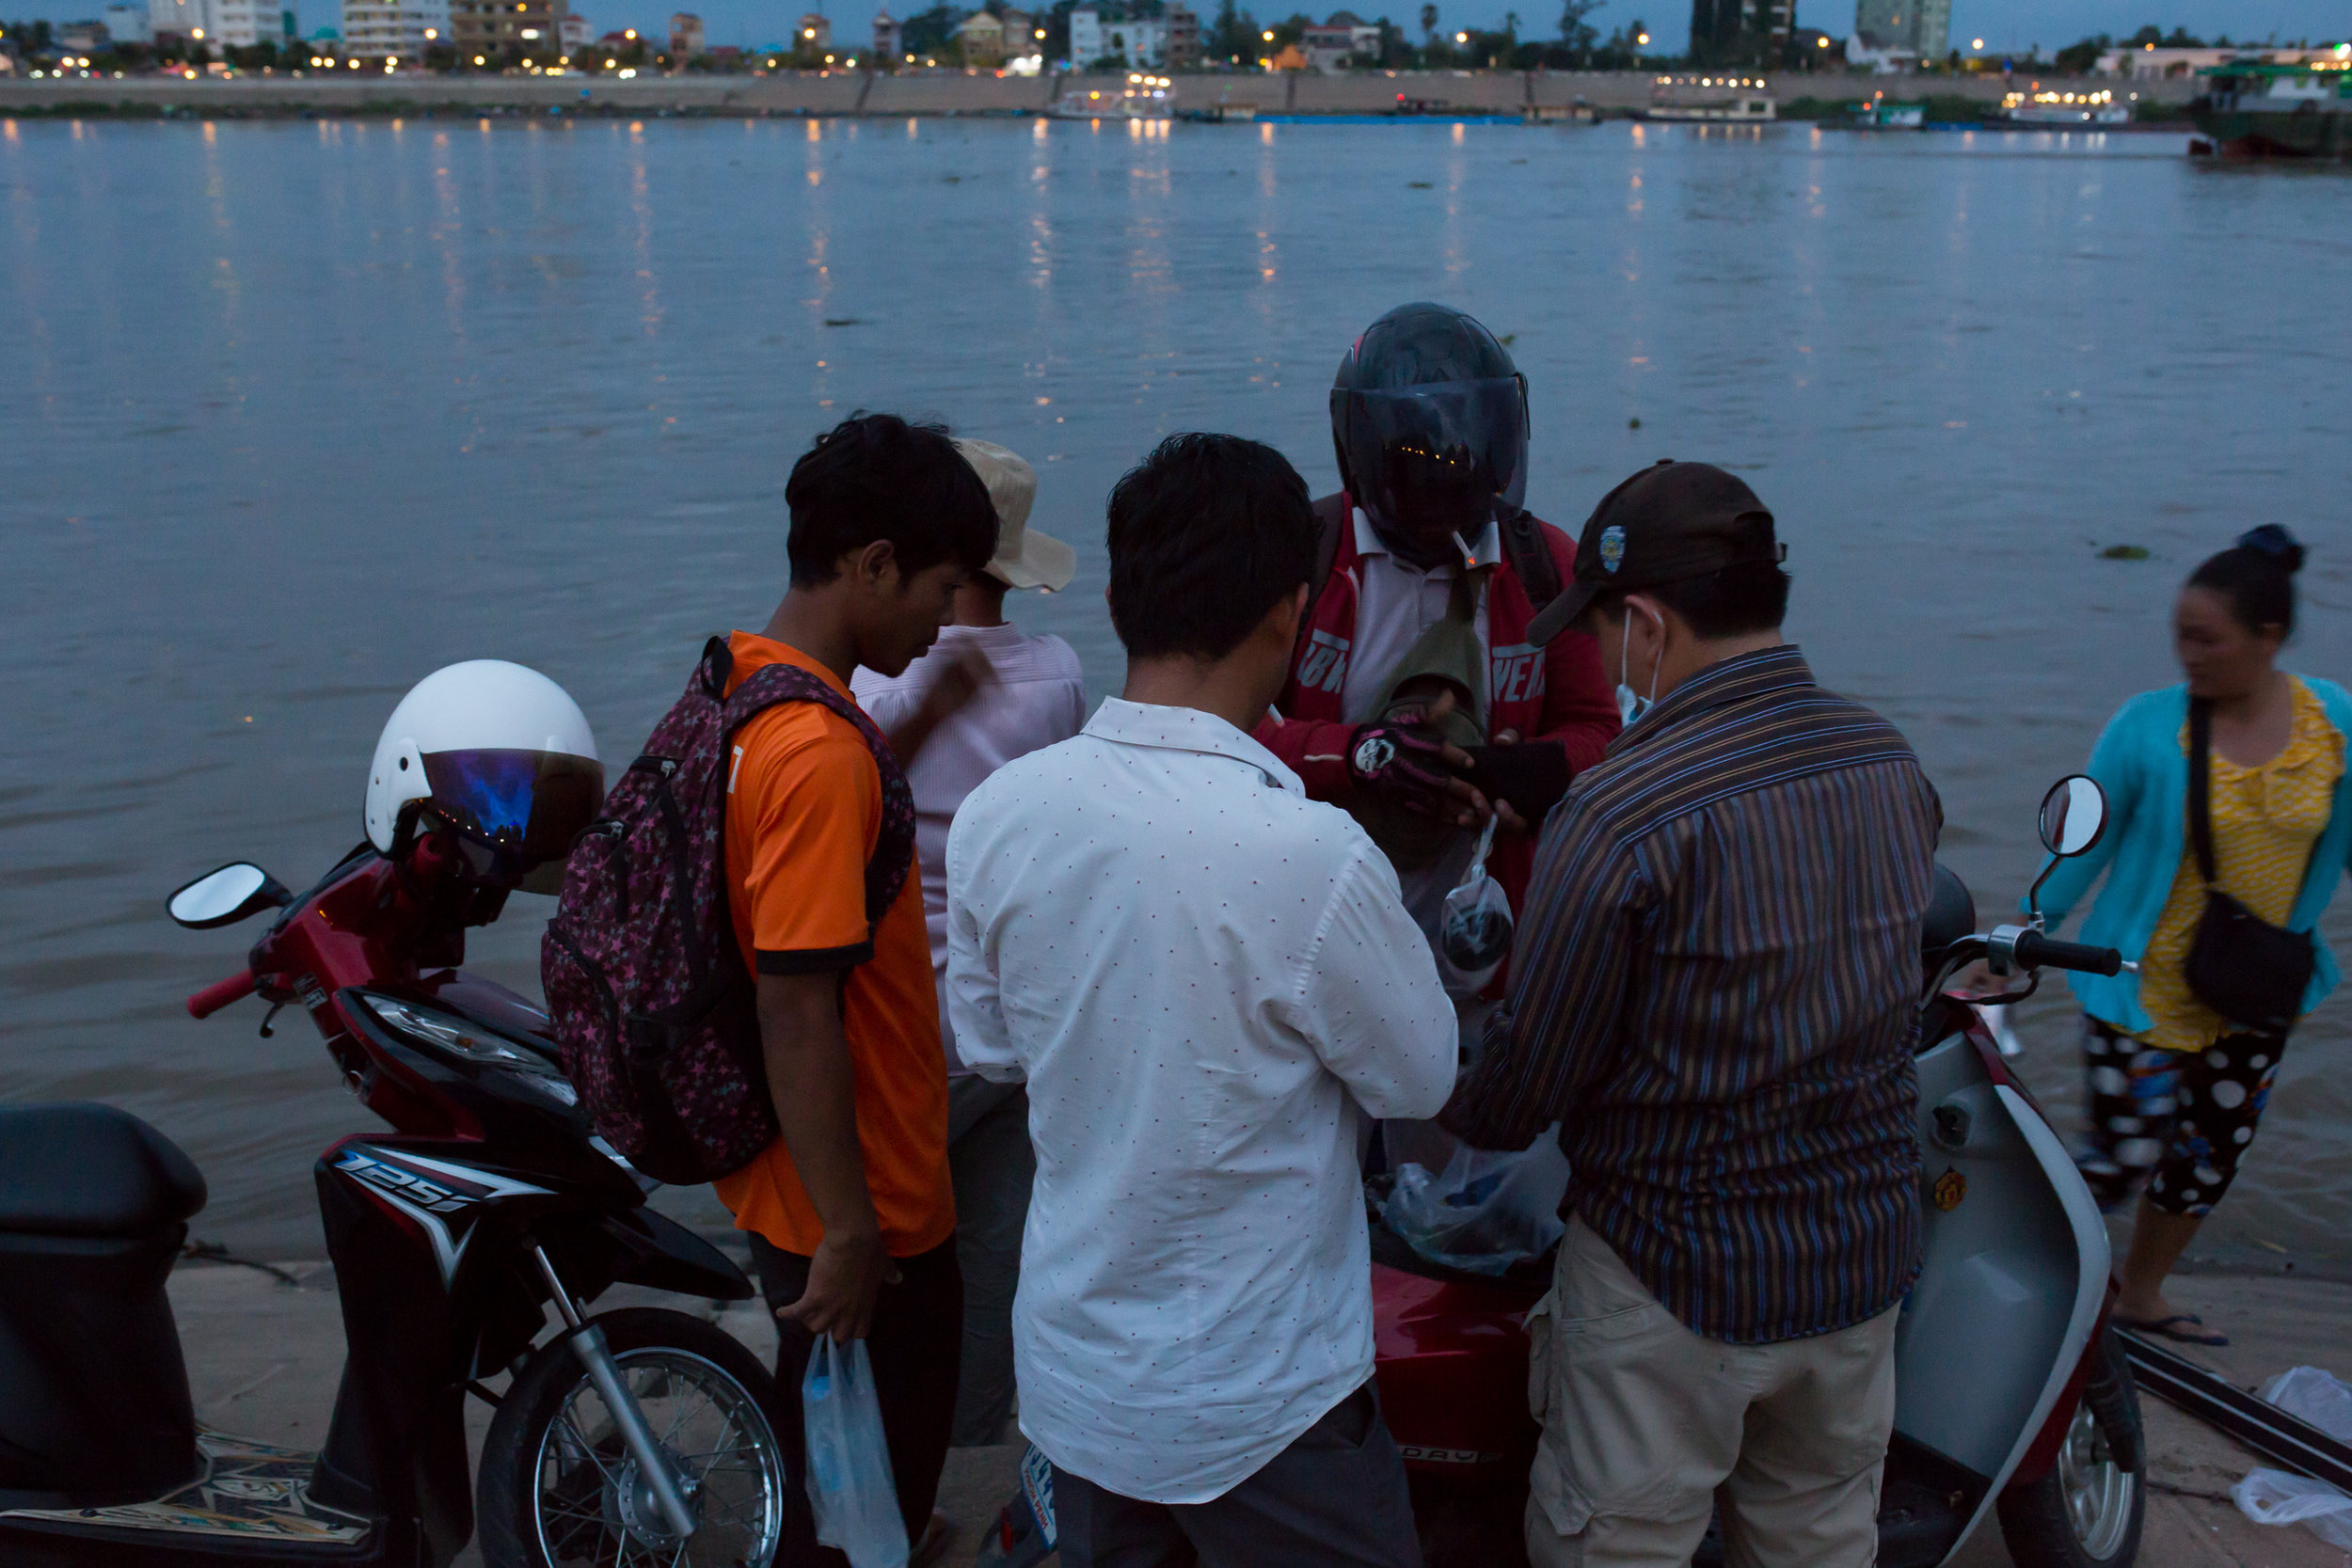 Transgender women may not feel safe on the Mekong River at night when groups of men gather and drink together.